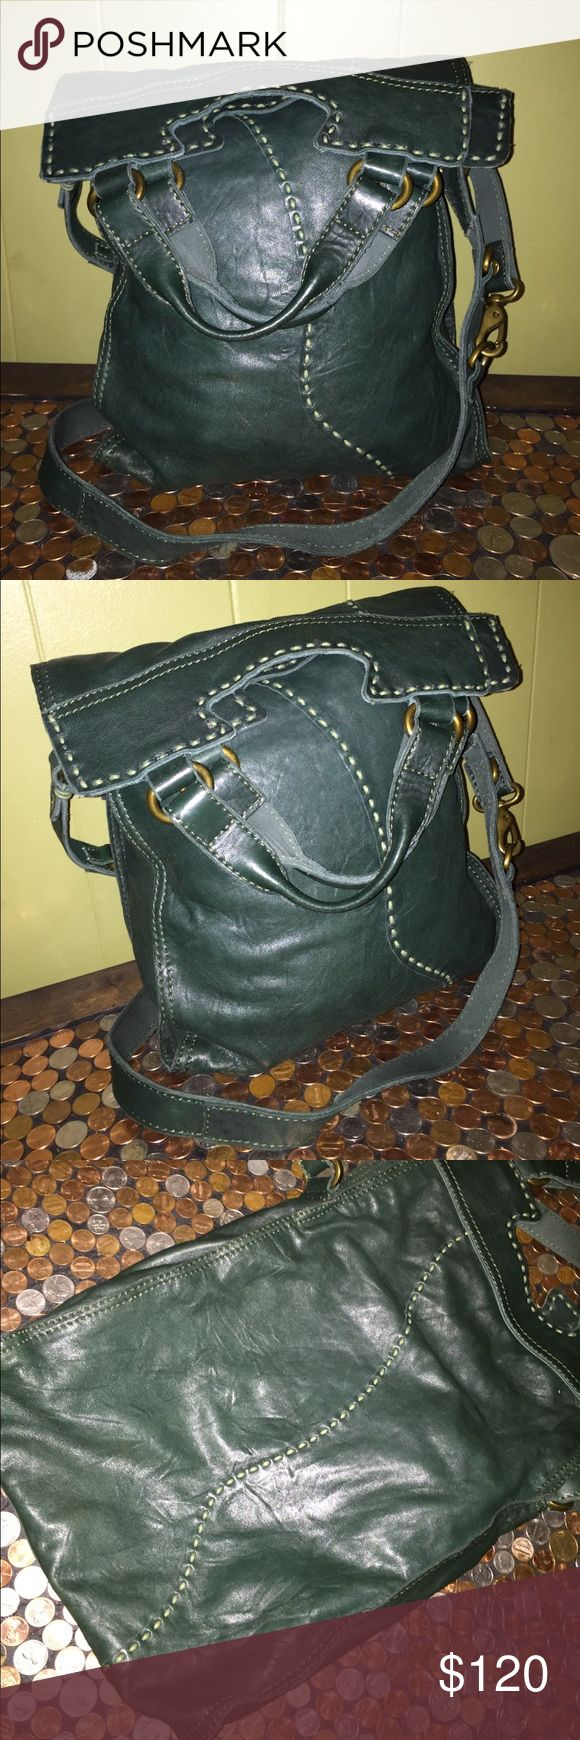 """Lucky Brand Abbey Road Dark Green Italian Lamb Bag Lucky Brand Abbey Road Dark Green Italian Lambskin Leather Crossbody Bag. Very Nice Pre Owned Condition, Clean Inside & Out. Lots Of Wear Left. Satchel Carry Handles With Adjustable Crossbody Strap. 11.5""""L x 2""""D x 18""""H. Fold & Flap Over. Questions Welcome Thanks For Looking. Lucky Brand Bags Crossbody Bags"""